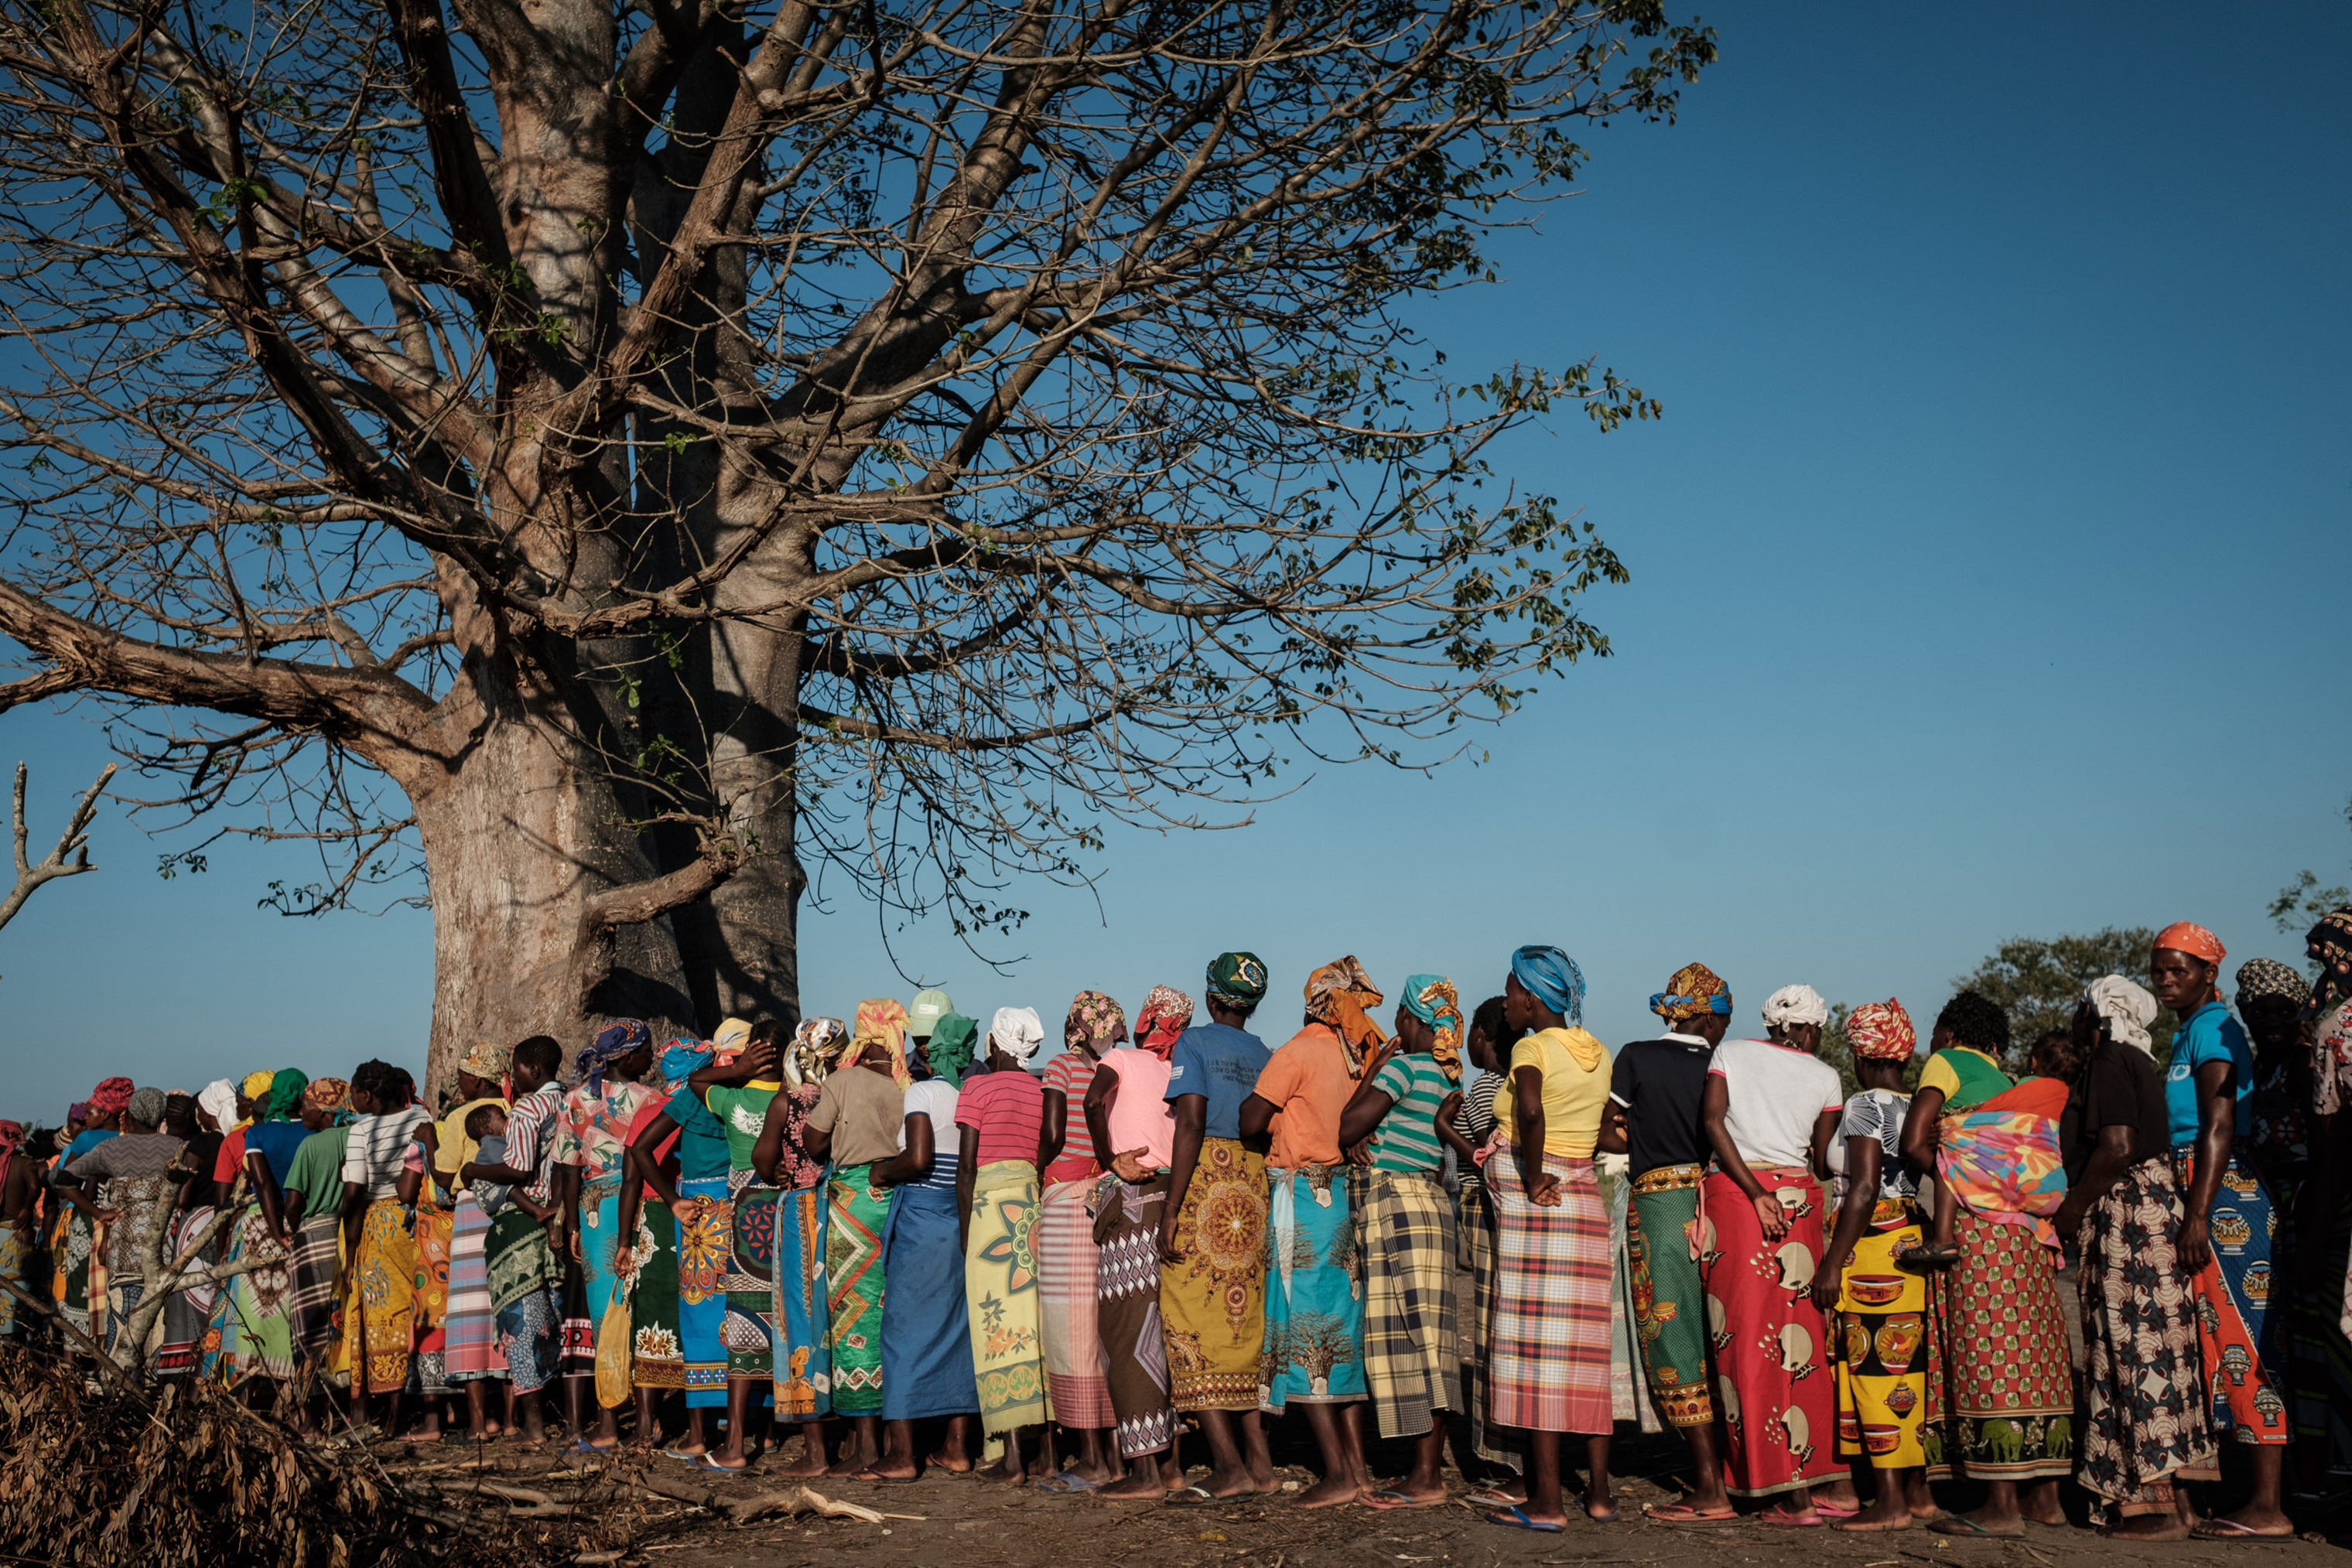 Women wait in a line to receive relief supplies from a South African relief organization in Estaquinha, Mozambique, on March 26, 2019.